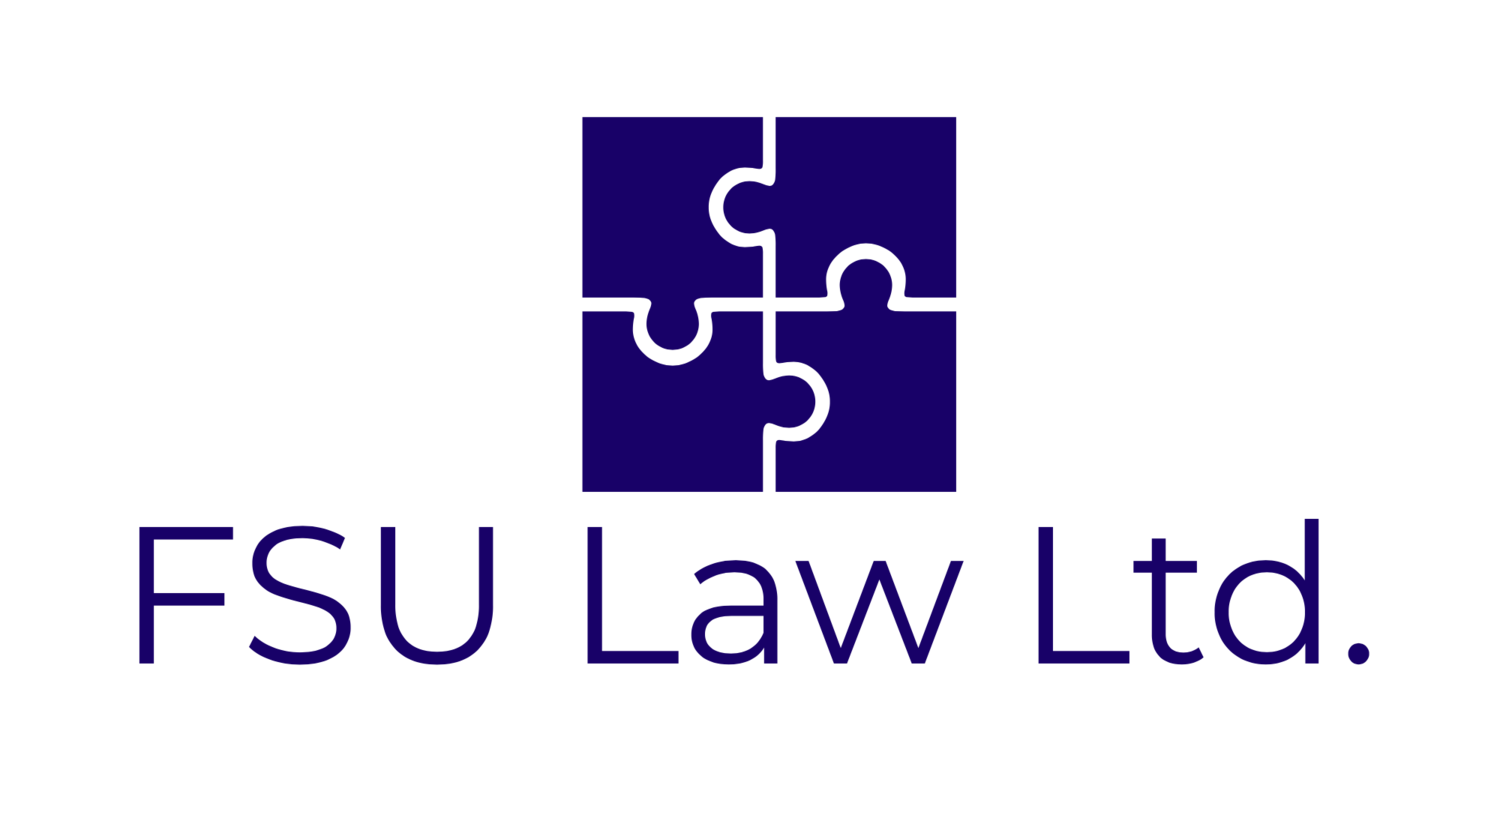 FSU Law Ltd